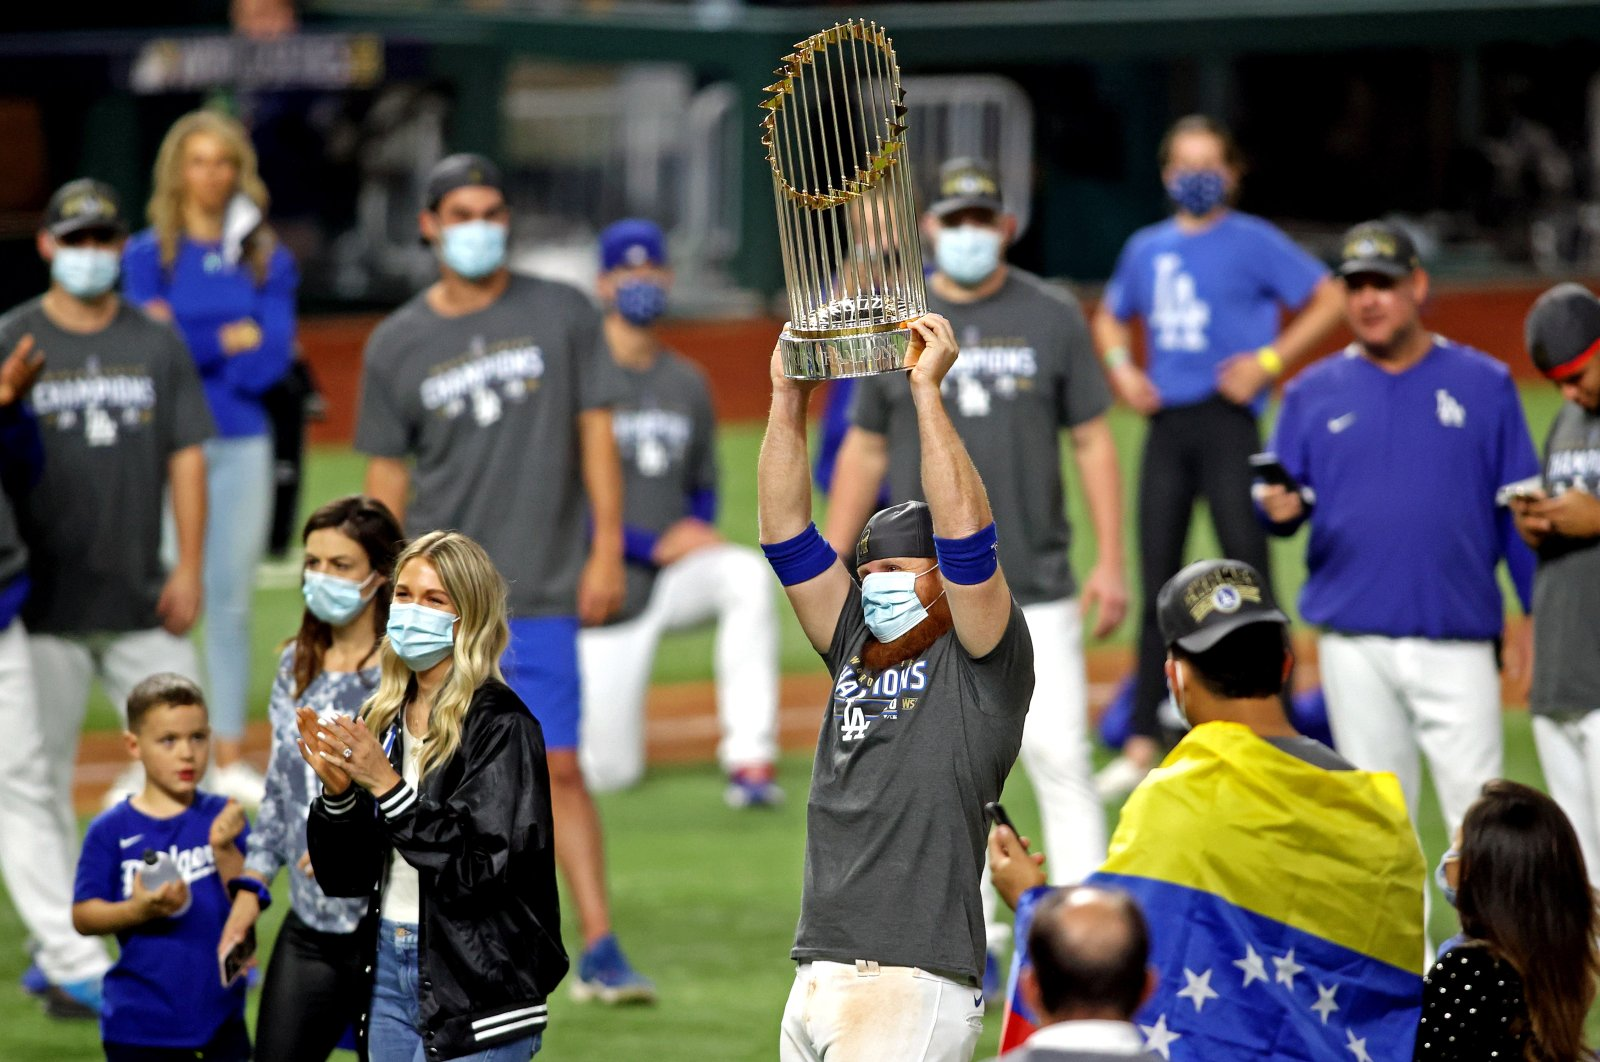 Los Angeles Dodgers' Justin Turner holds the Commissioner's Trophy after the game, in Arlington, Texas, Oct. 27, 2020. (REUTERS Photo)